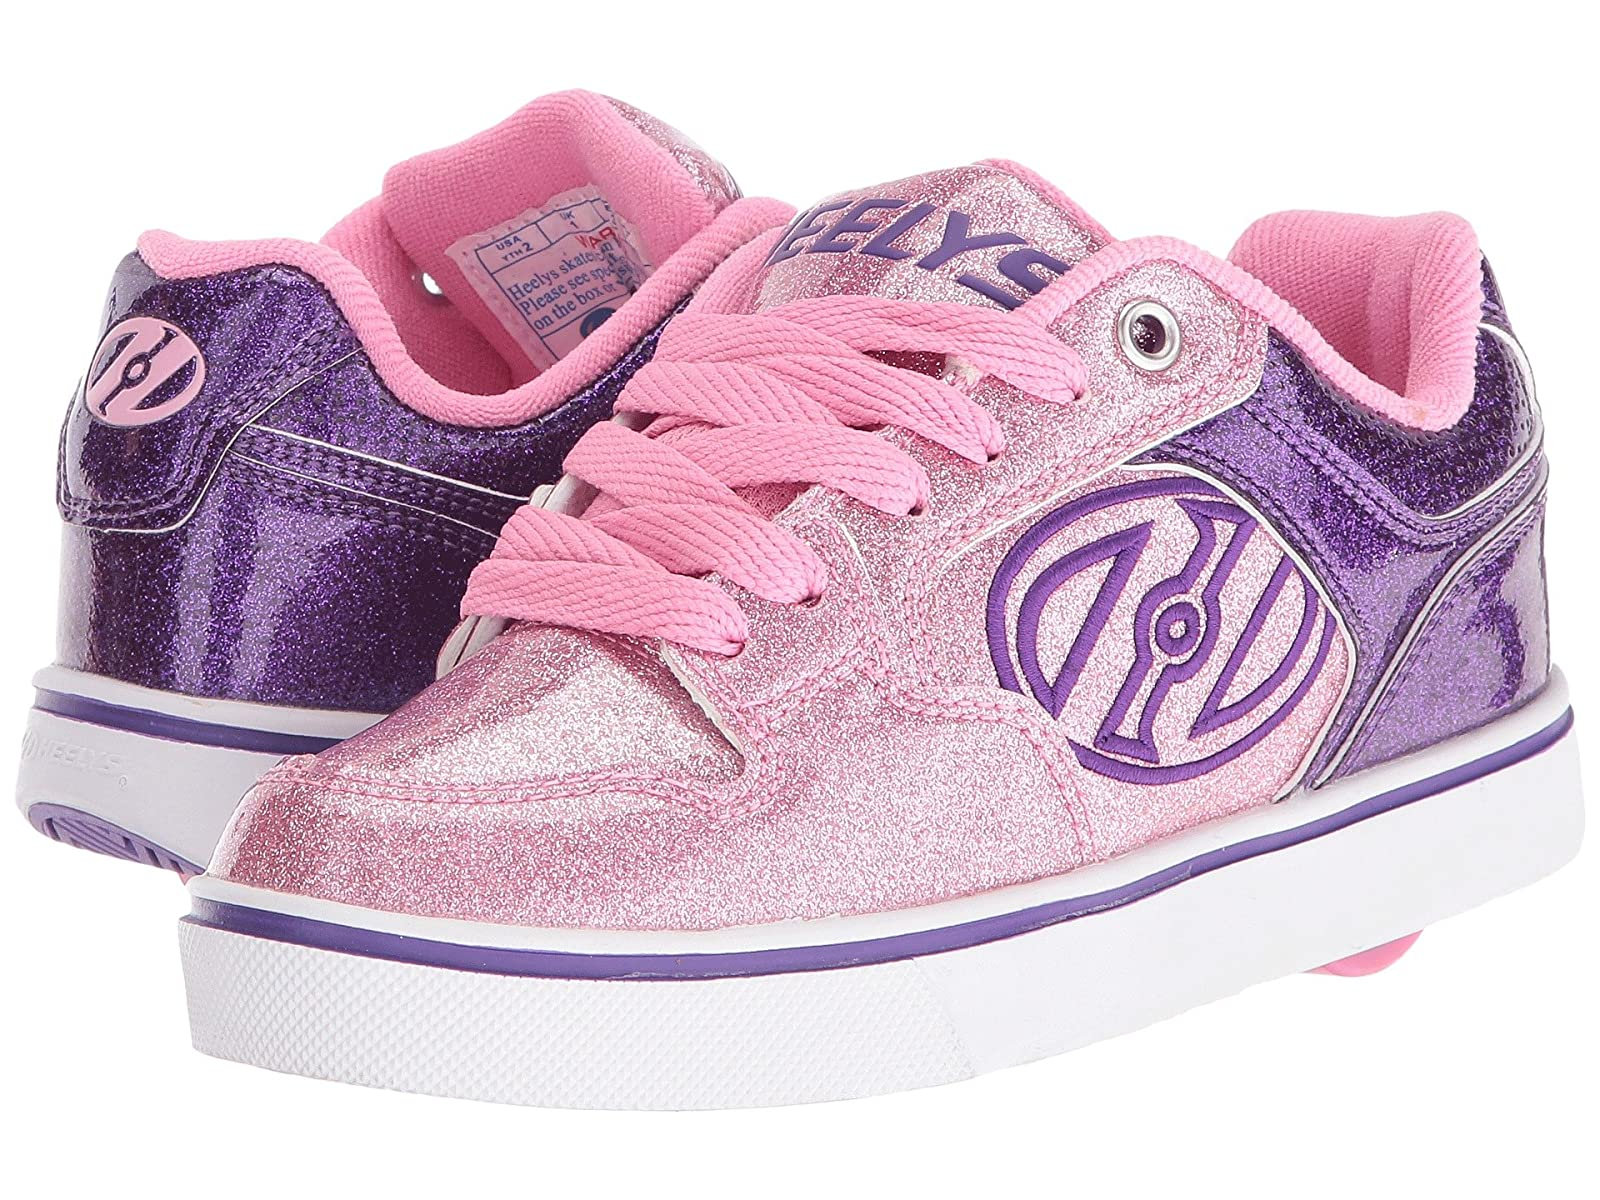 Heelys Motion Plus (Little Kid/Big Kid/Adult)Cheap and distinctive eye-catching shoes